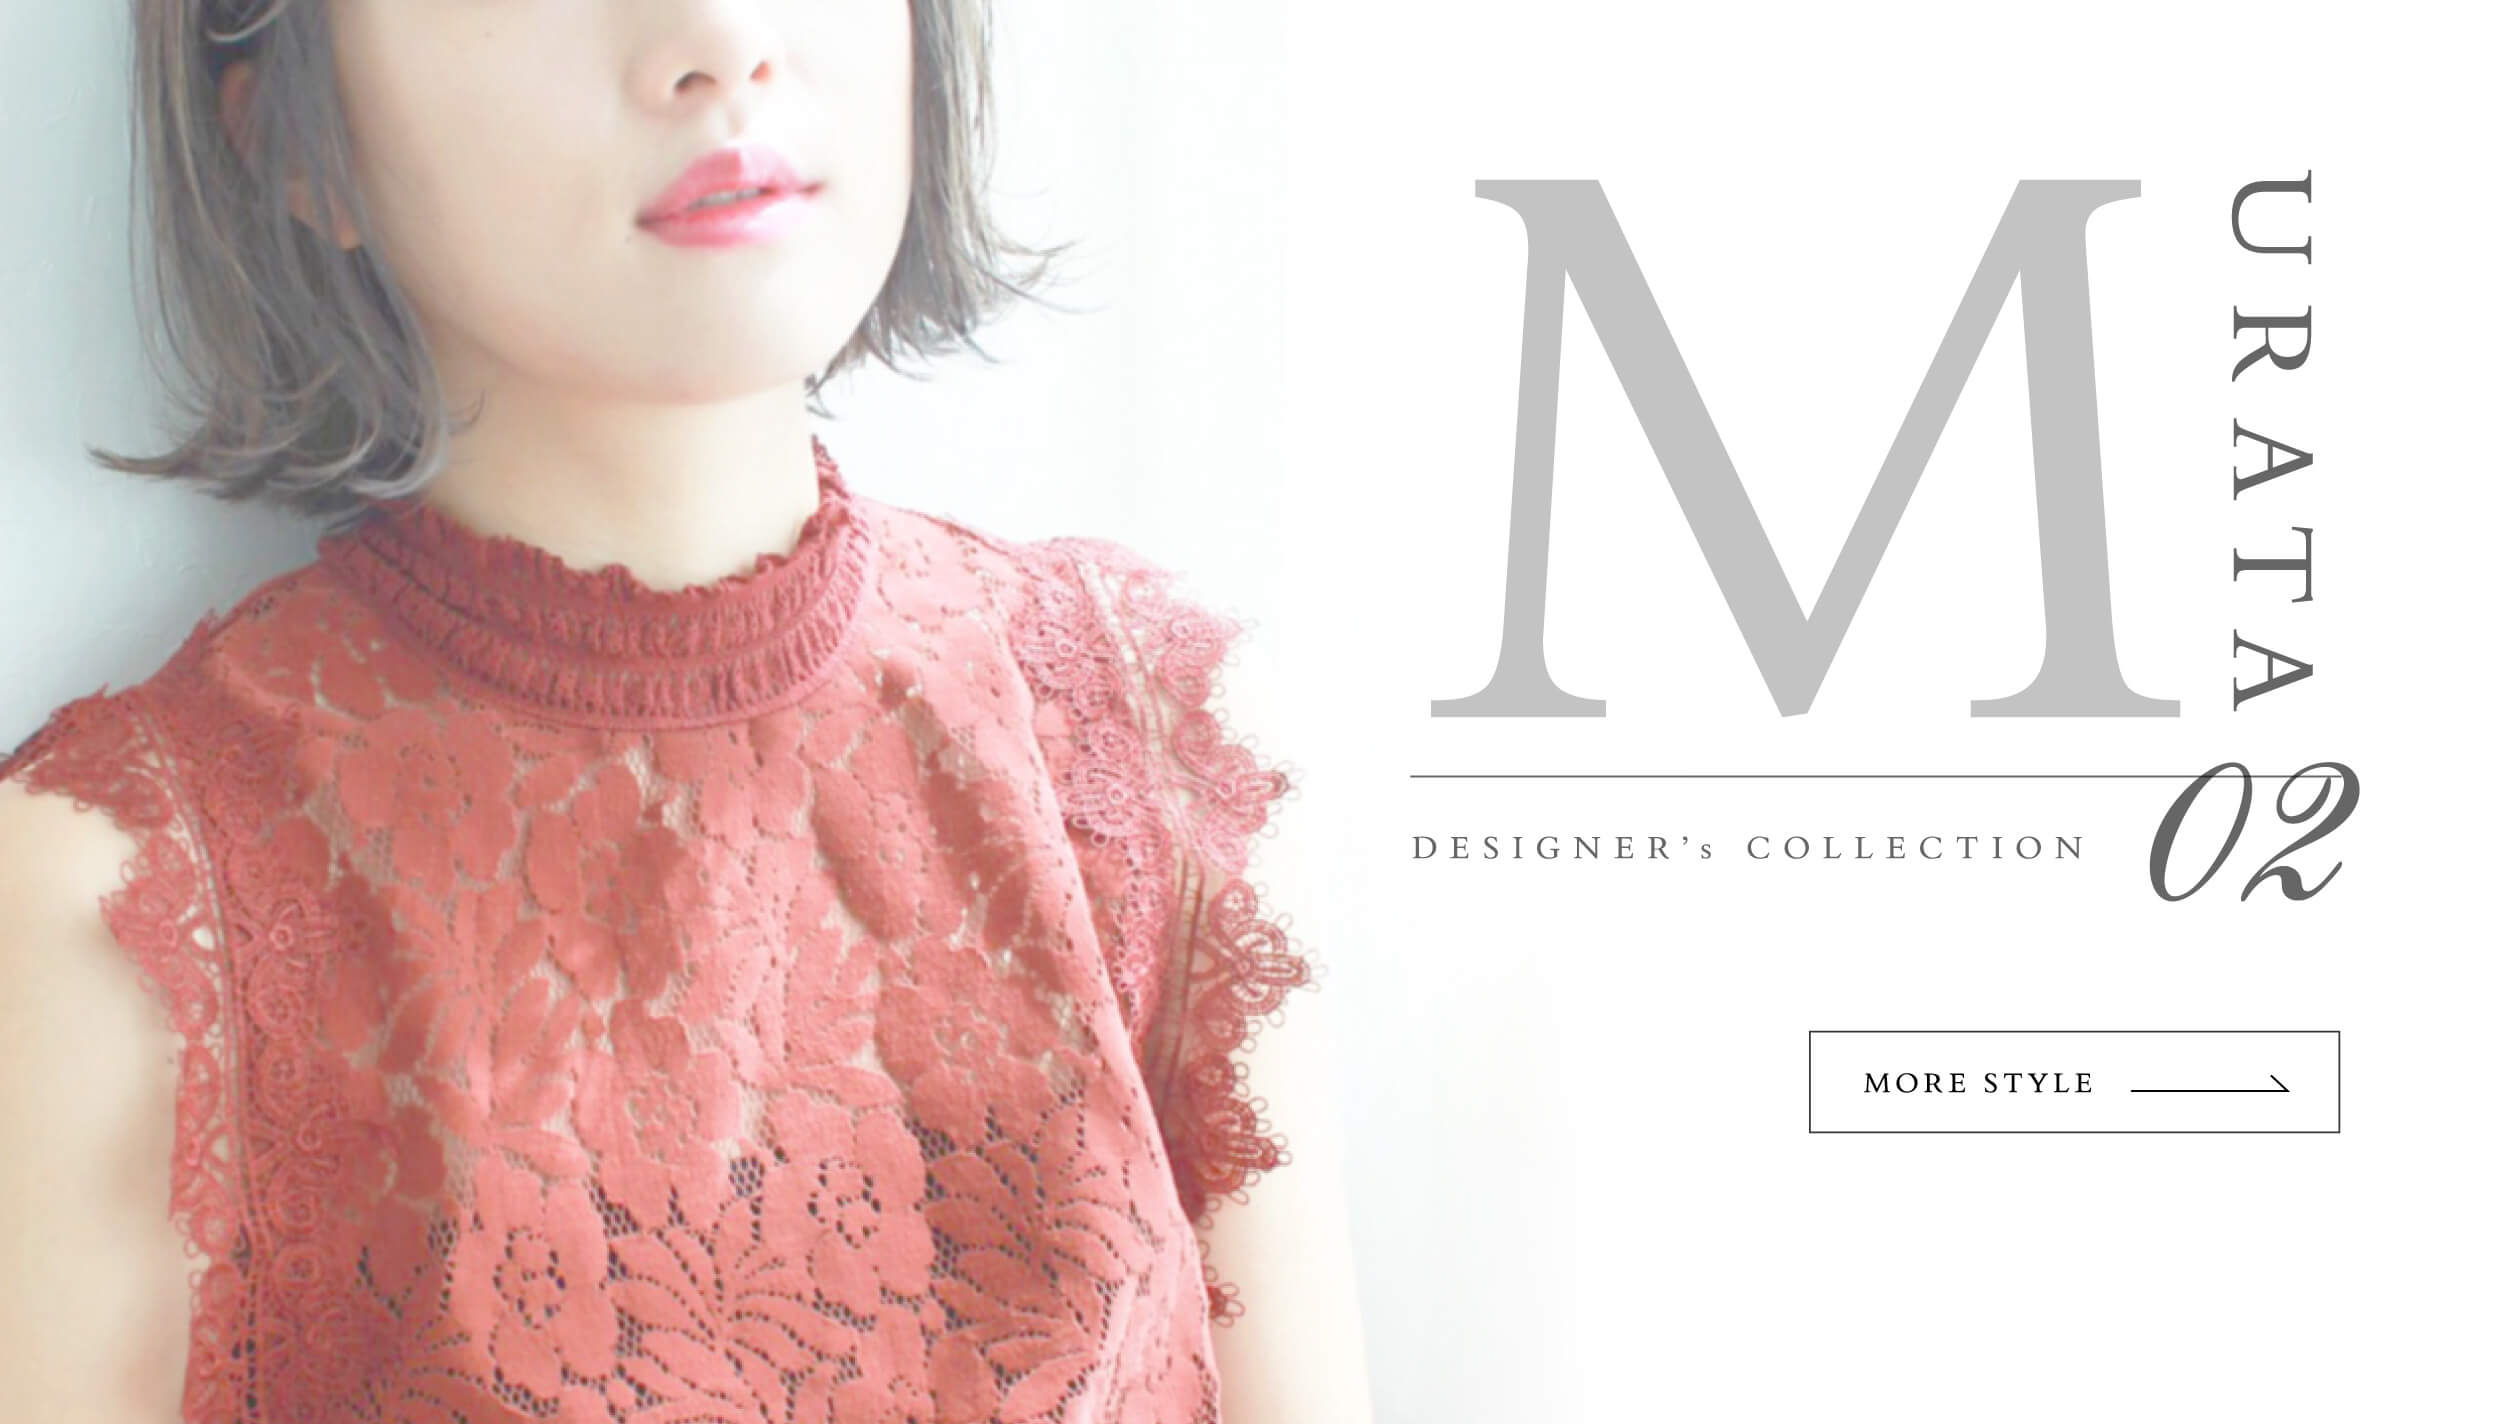 Designer's collection 02 MURATA